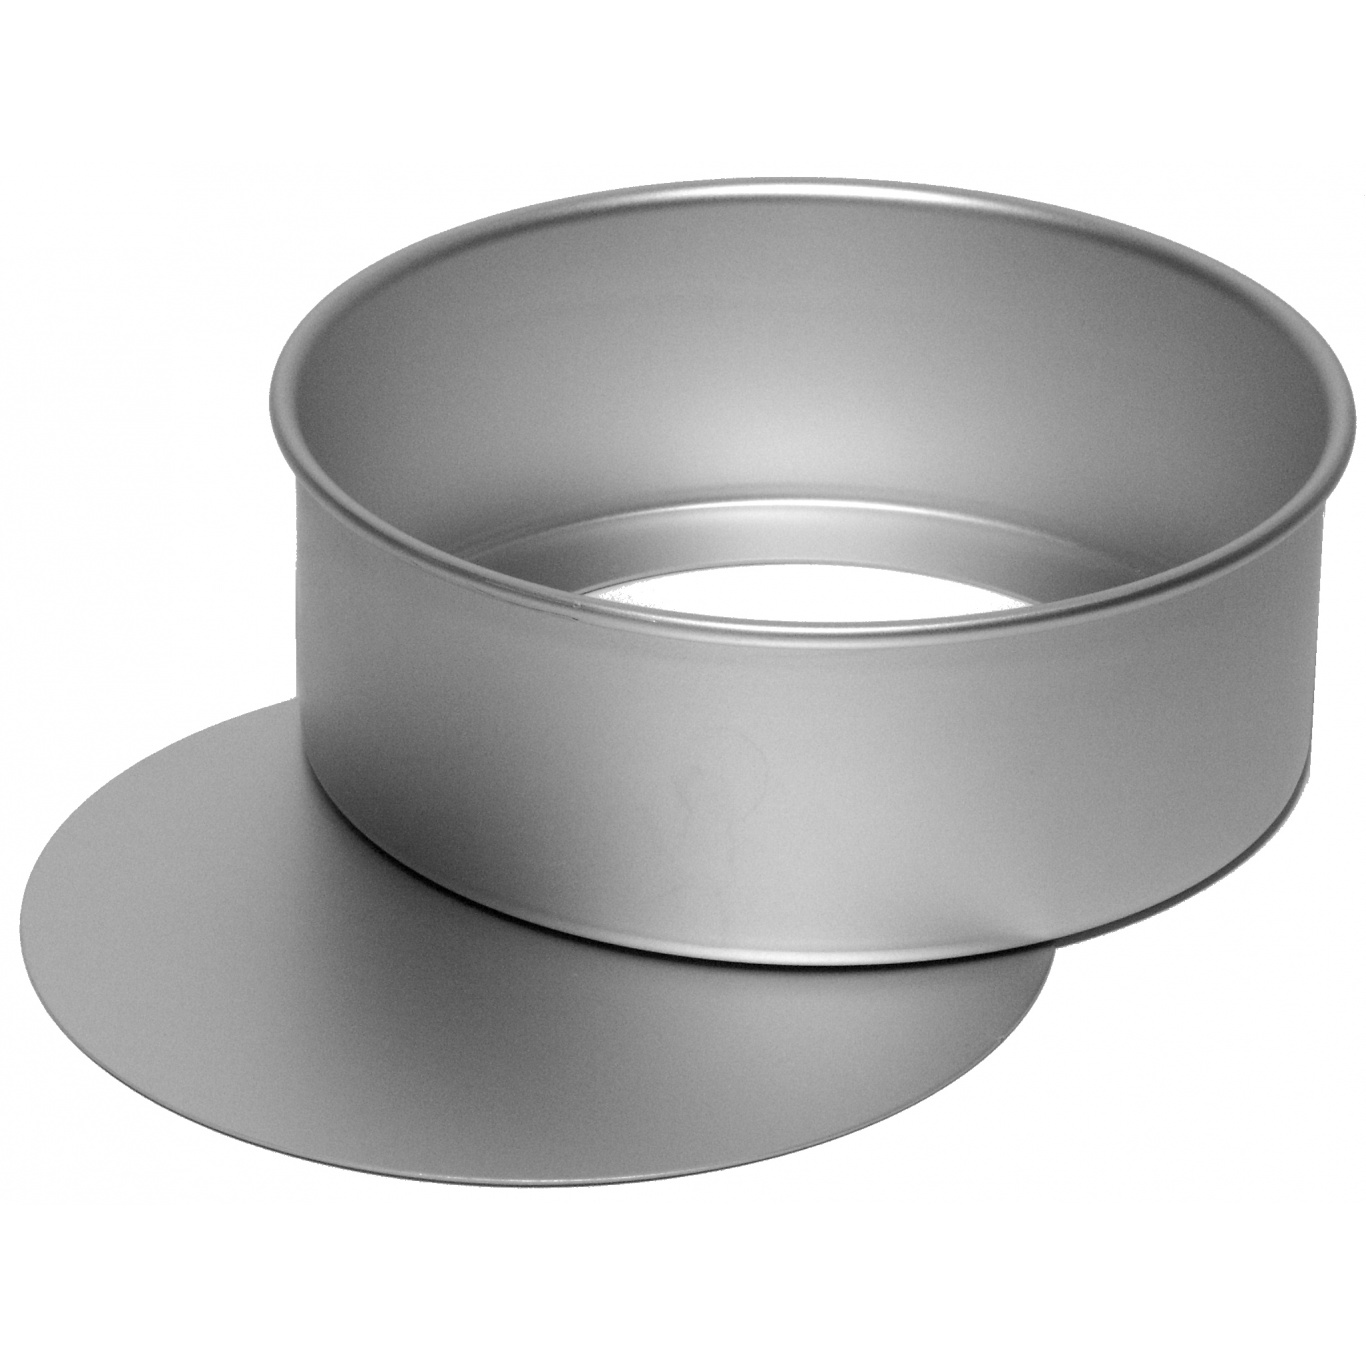 Image of Silverwood Round Cake Pan Loose Base 7ins/18cm